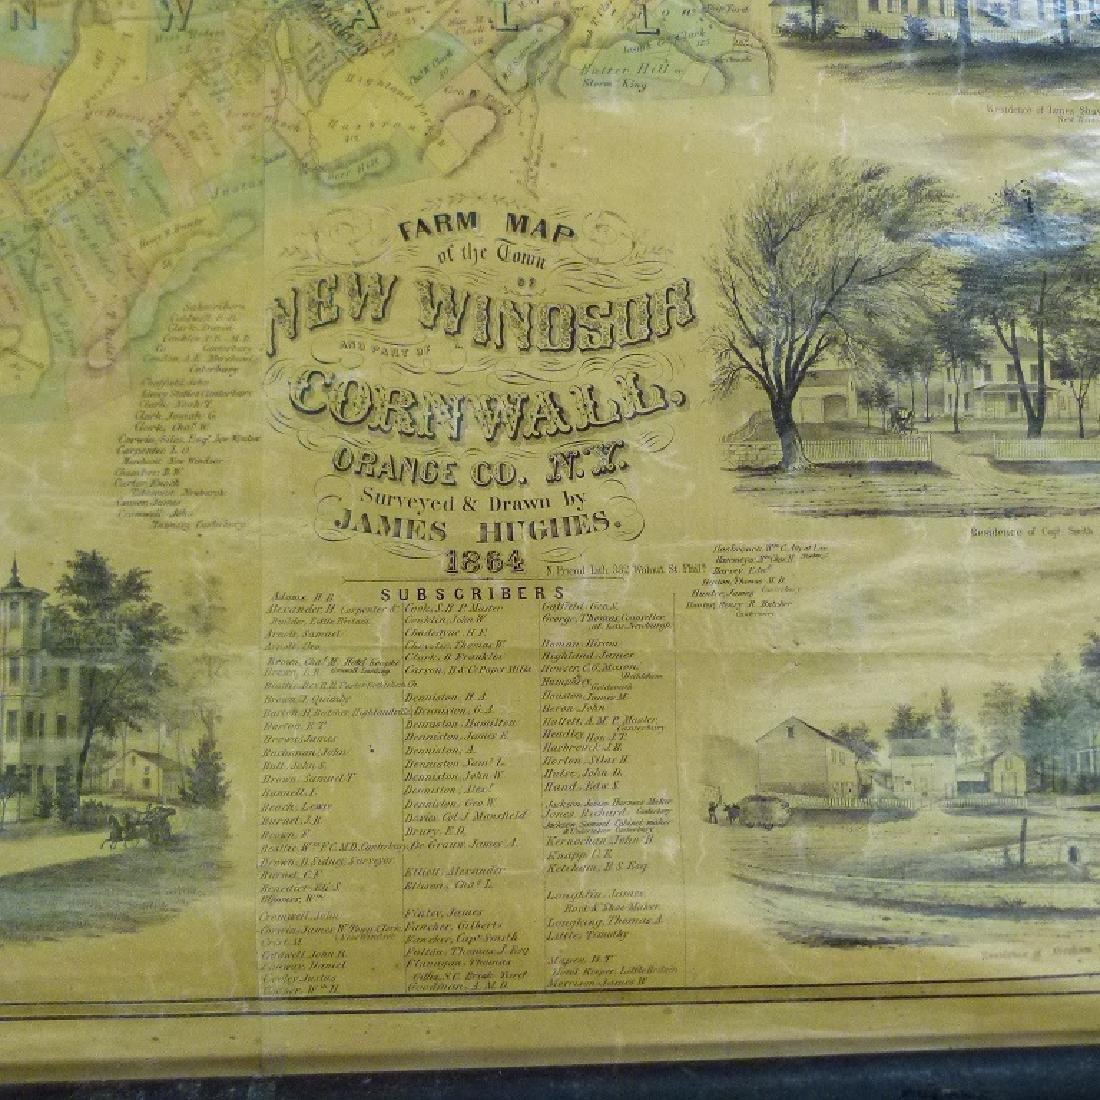 MAP OF NEW WINDSOR NEW YORK, HUGHES 1864